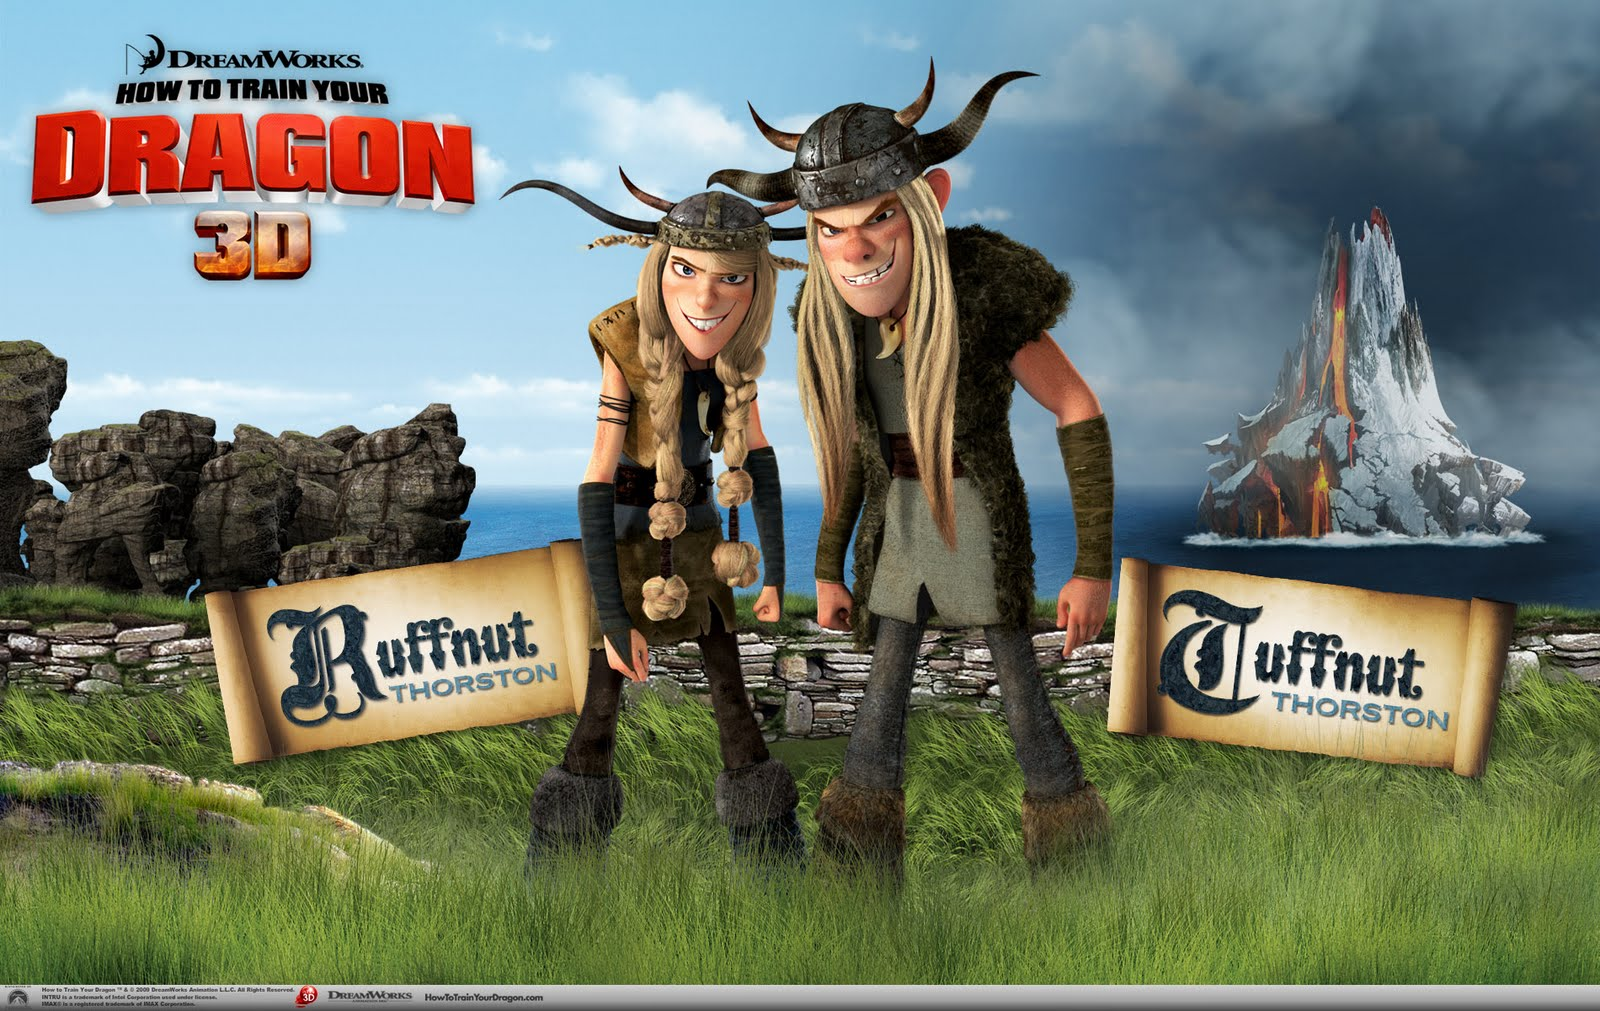 http://1.bp.blogspot.com/_r7NBJQJauD8/S8UaUegAjuI/AAAAAAAAAq4/Q2briSr7fFc/s1600/Kristen_Wiig_in_How_to_Train_Your_Dragon_Wallpaper_15_1280.jpg